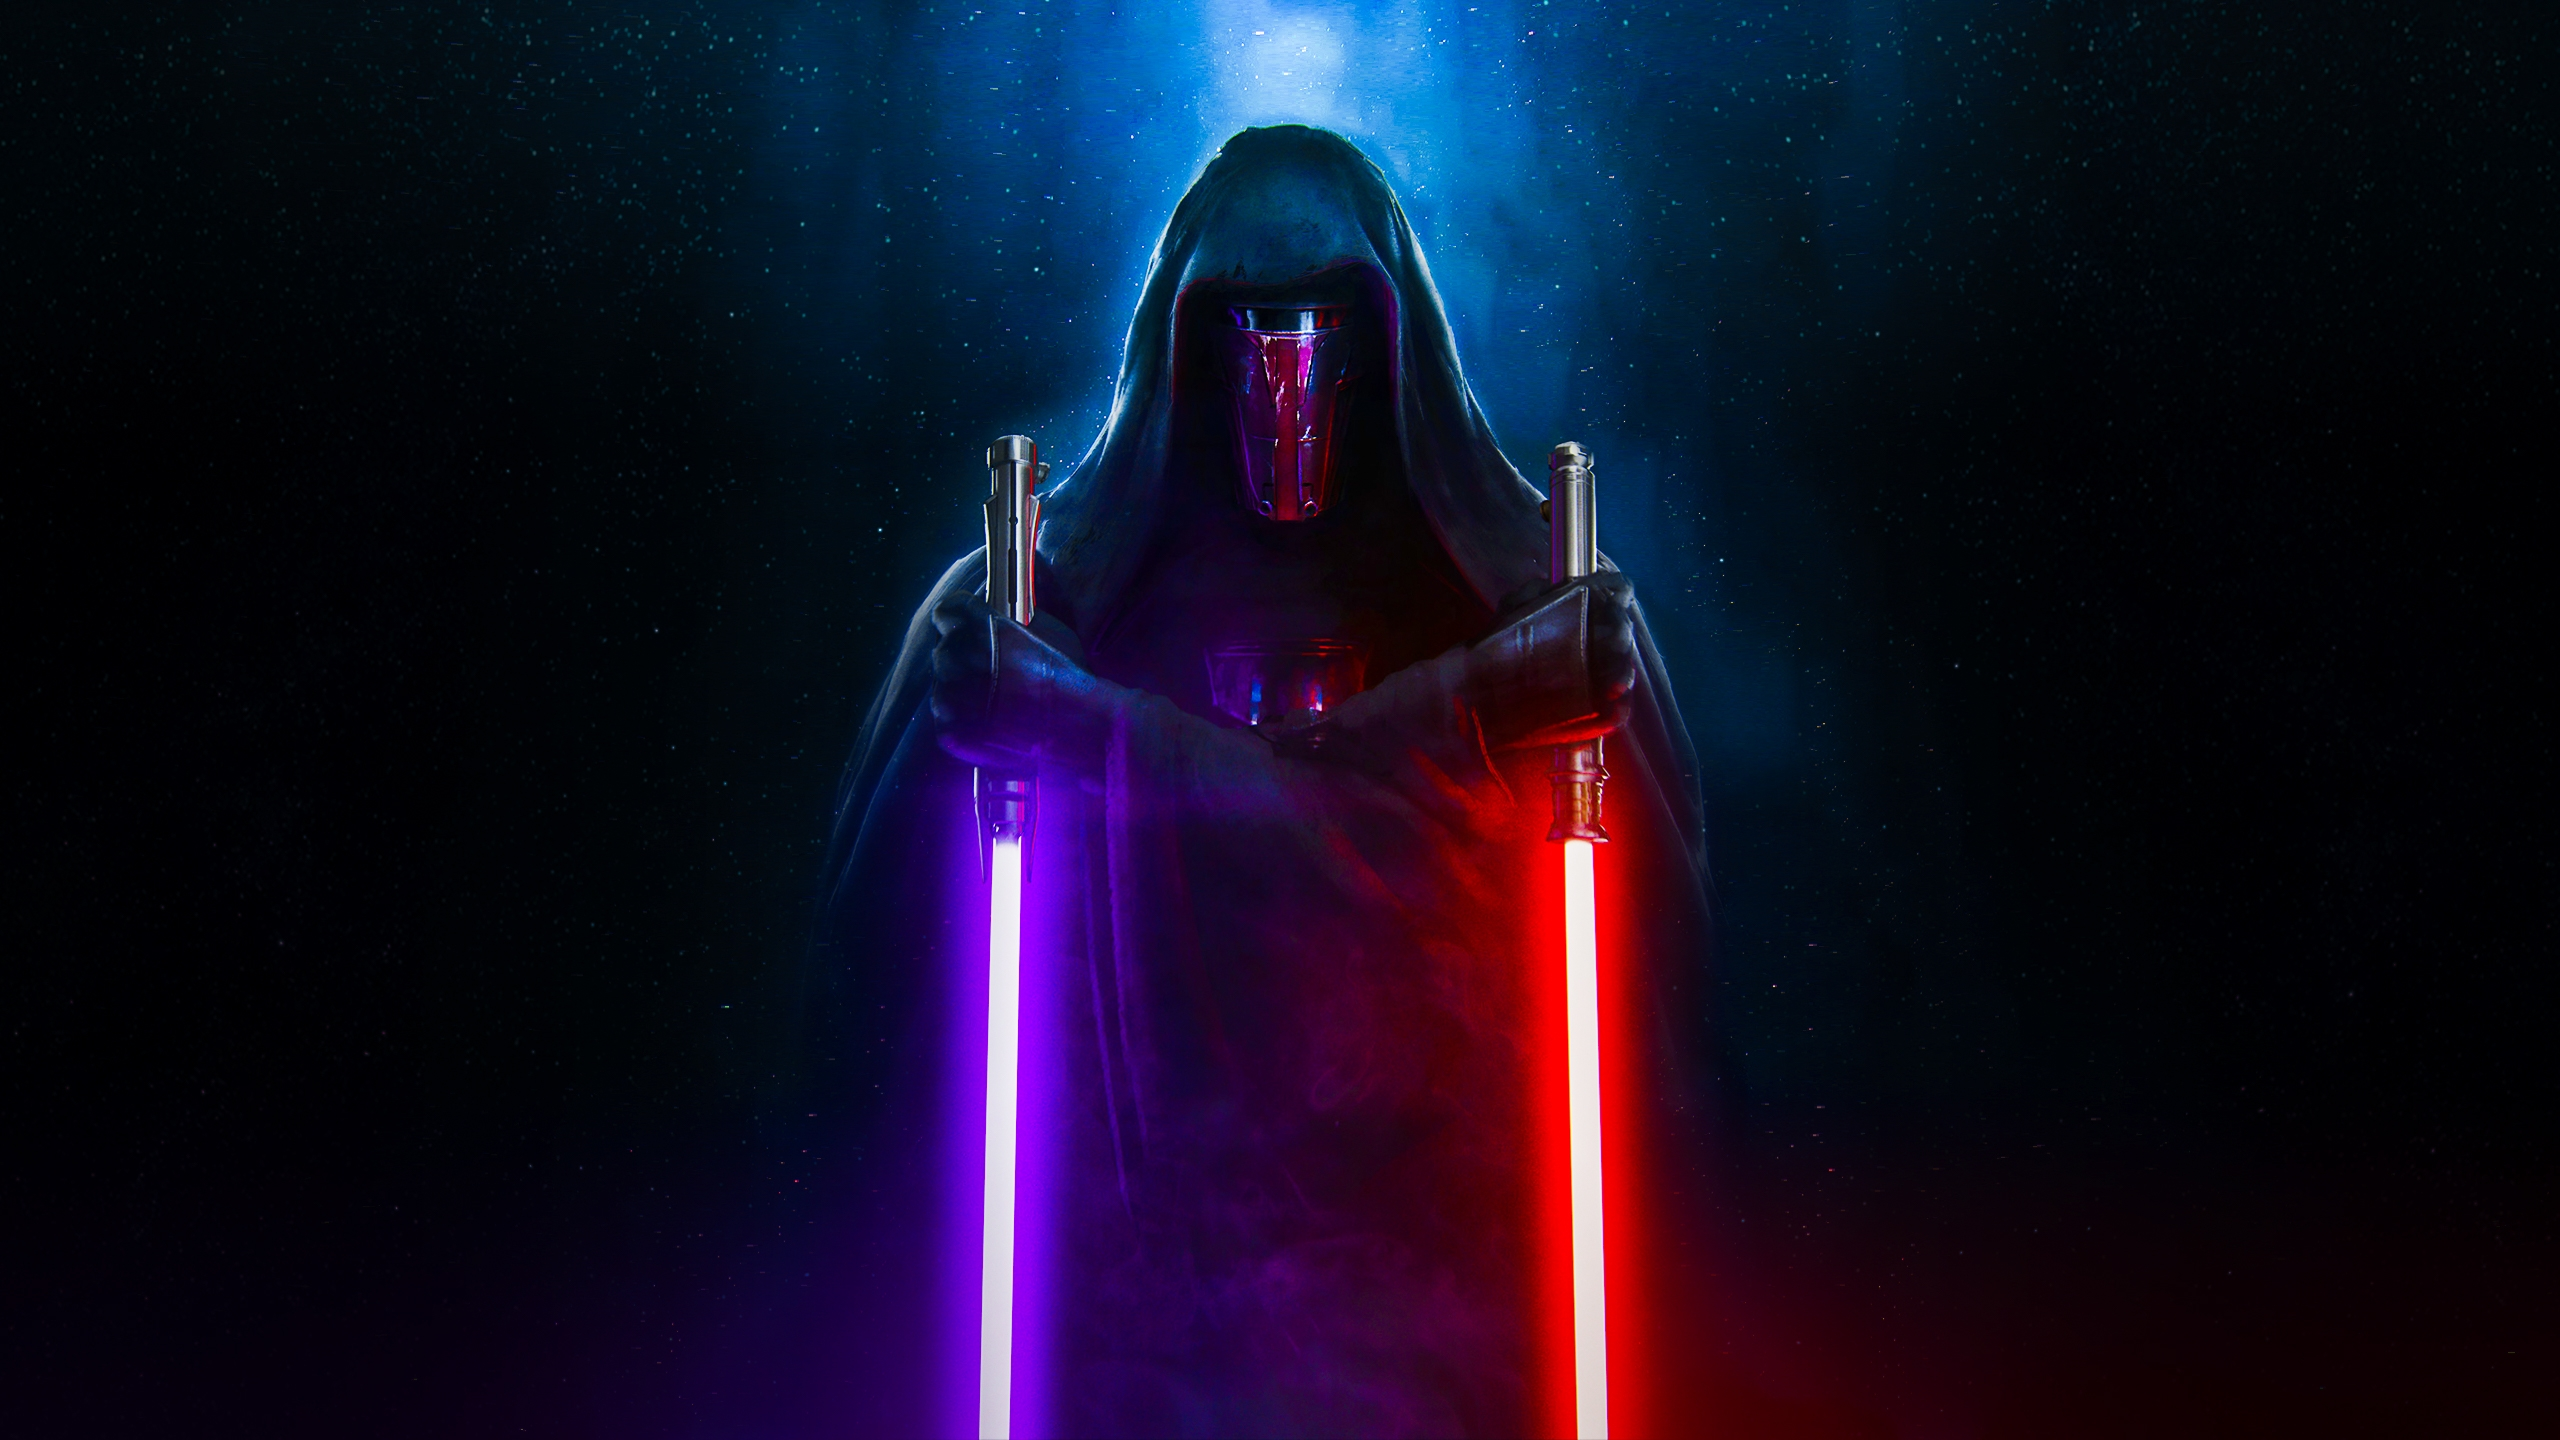 Darth 4K wallpapers for your desktop or ...